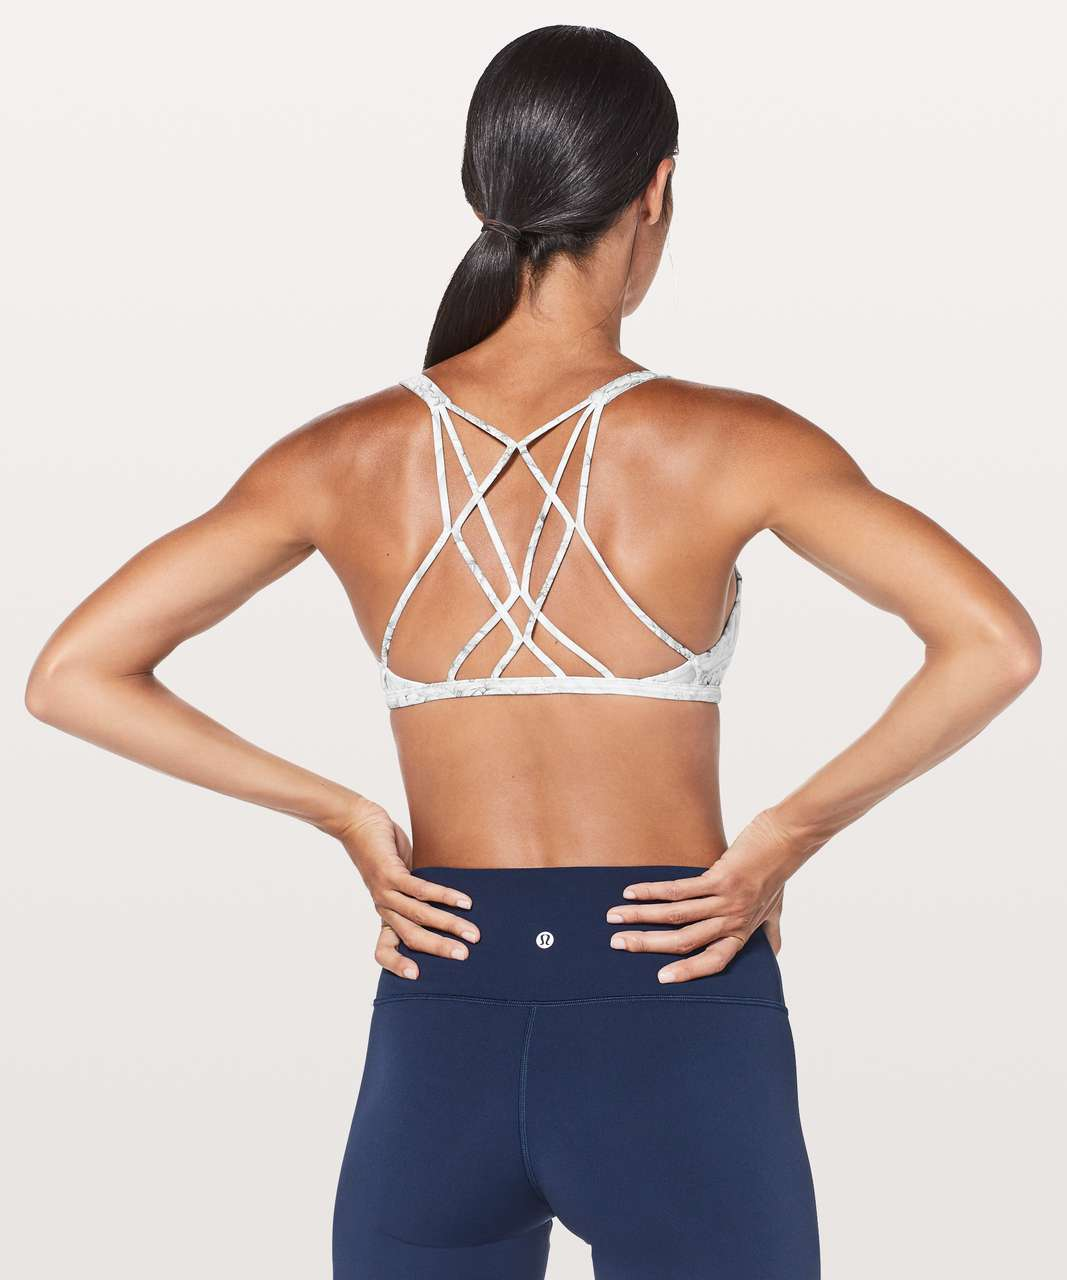 f751c80920 Lululemon Free To Be Zen Bra - Mini Twine White Multi - lulu fanatics